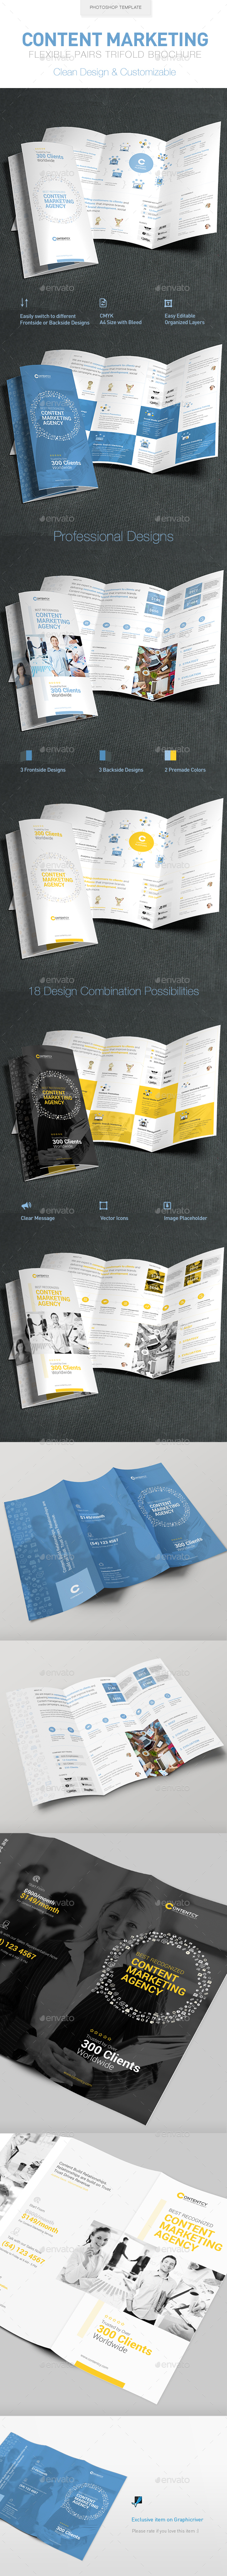 Content Marketing Trifold Brochure - Brochures Print Templates